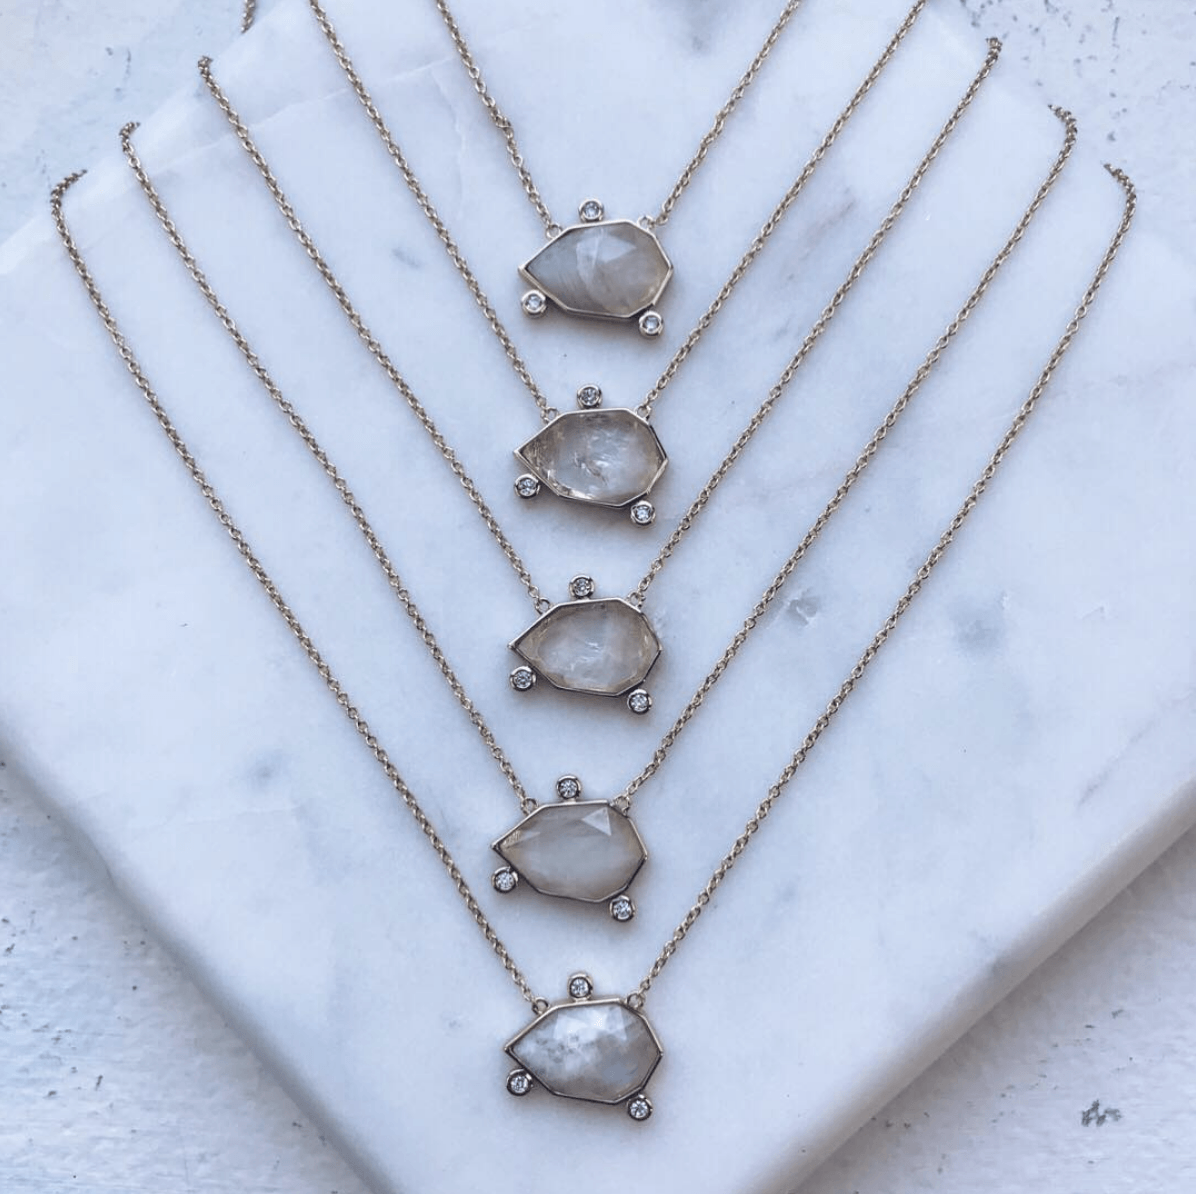 Orion Gemstone Necklace with Moonstone